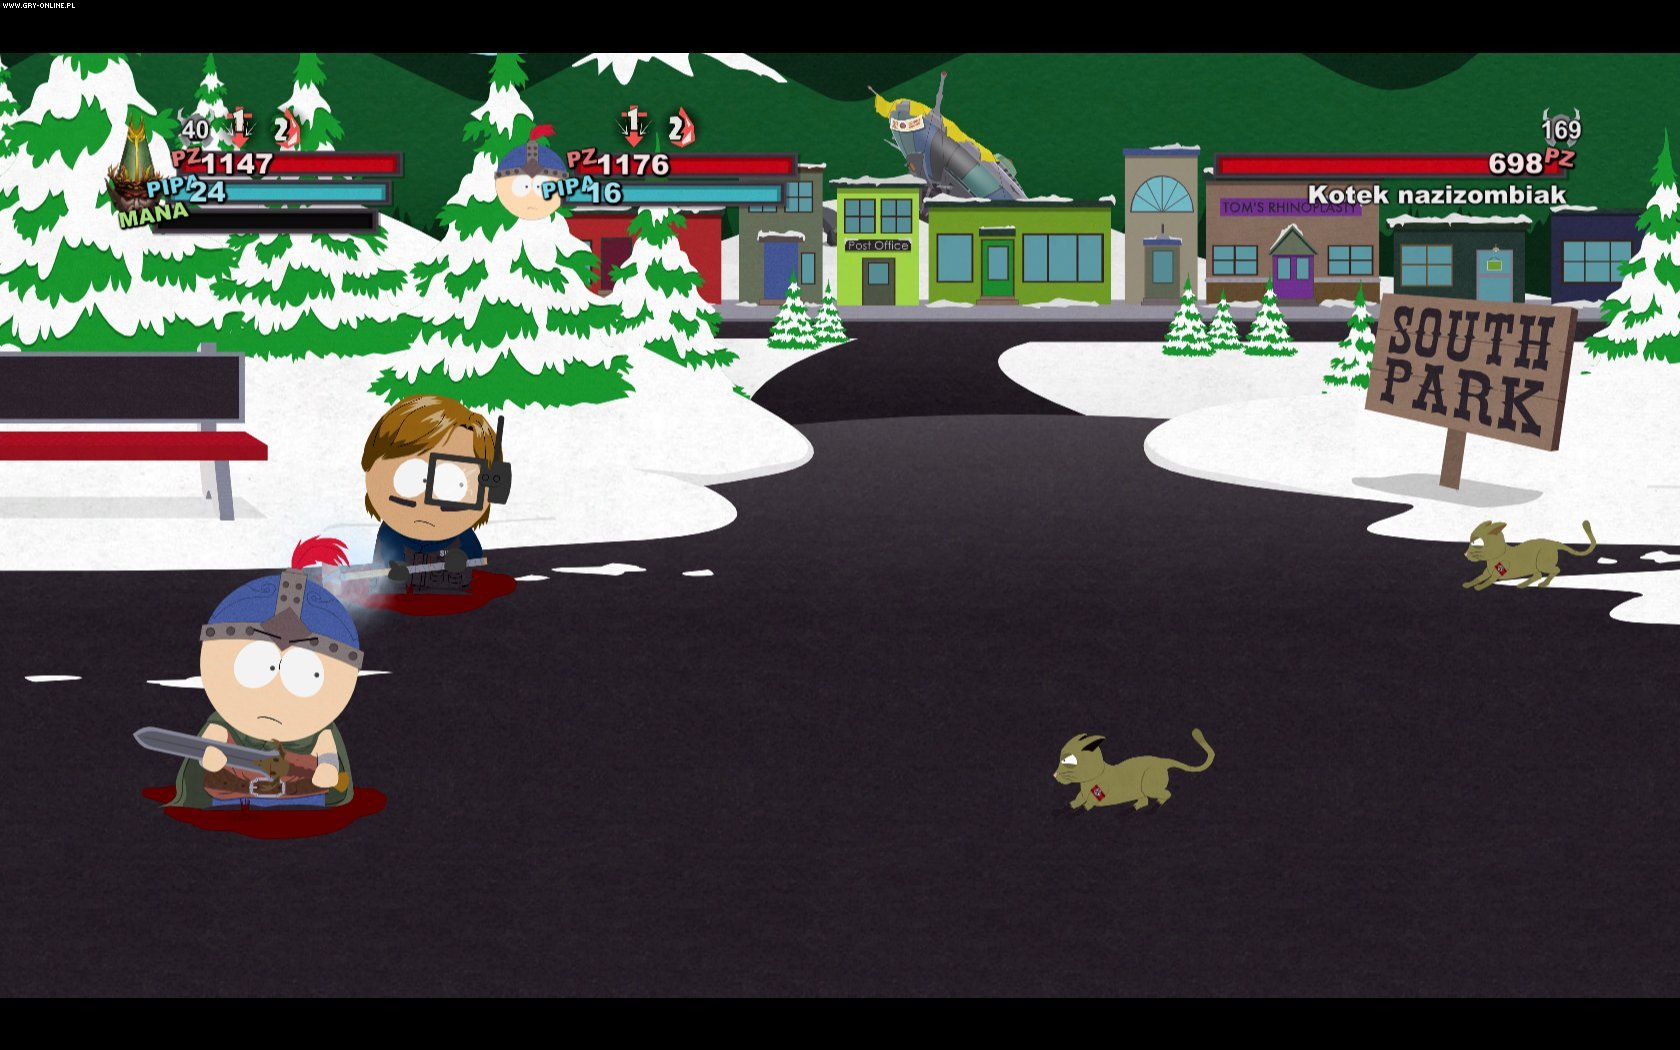 south park online free game